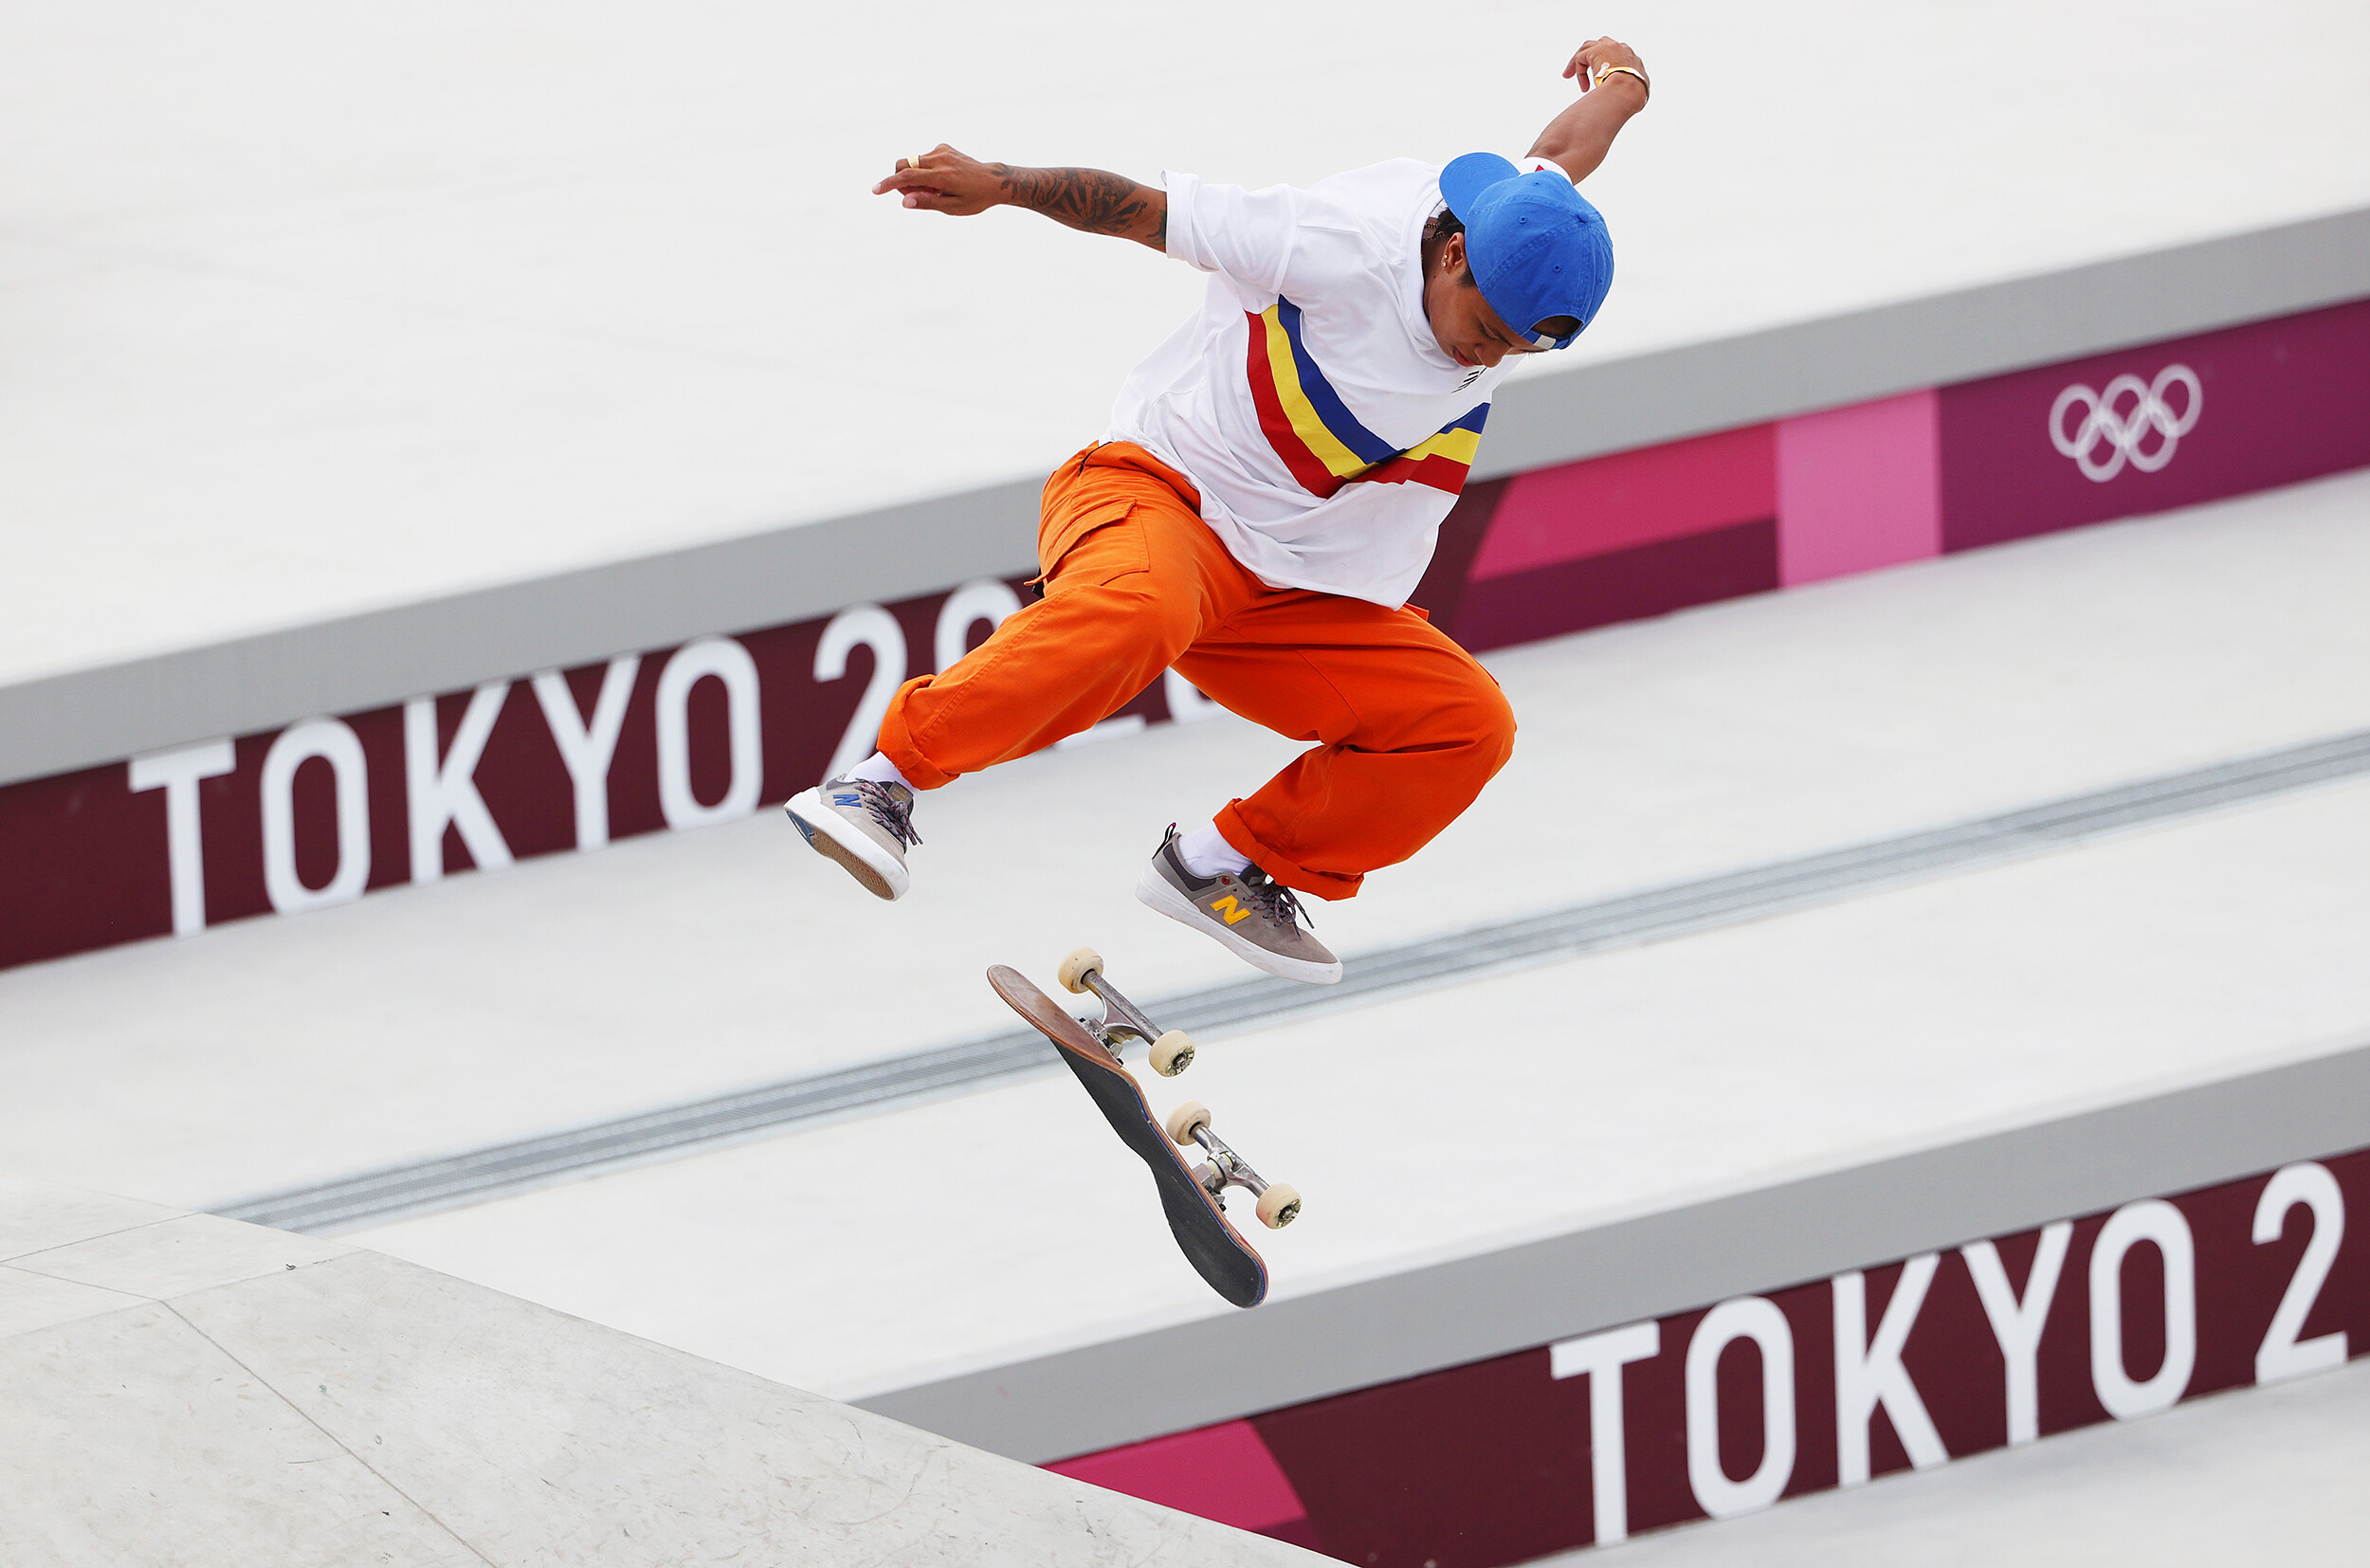 Some skateboarders don't want to see their sport in the Olympics. Here's why others say it's a positive step